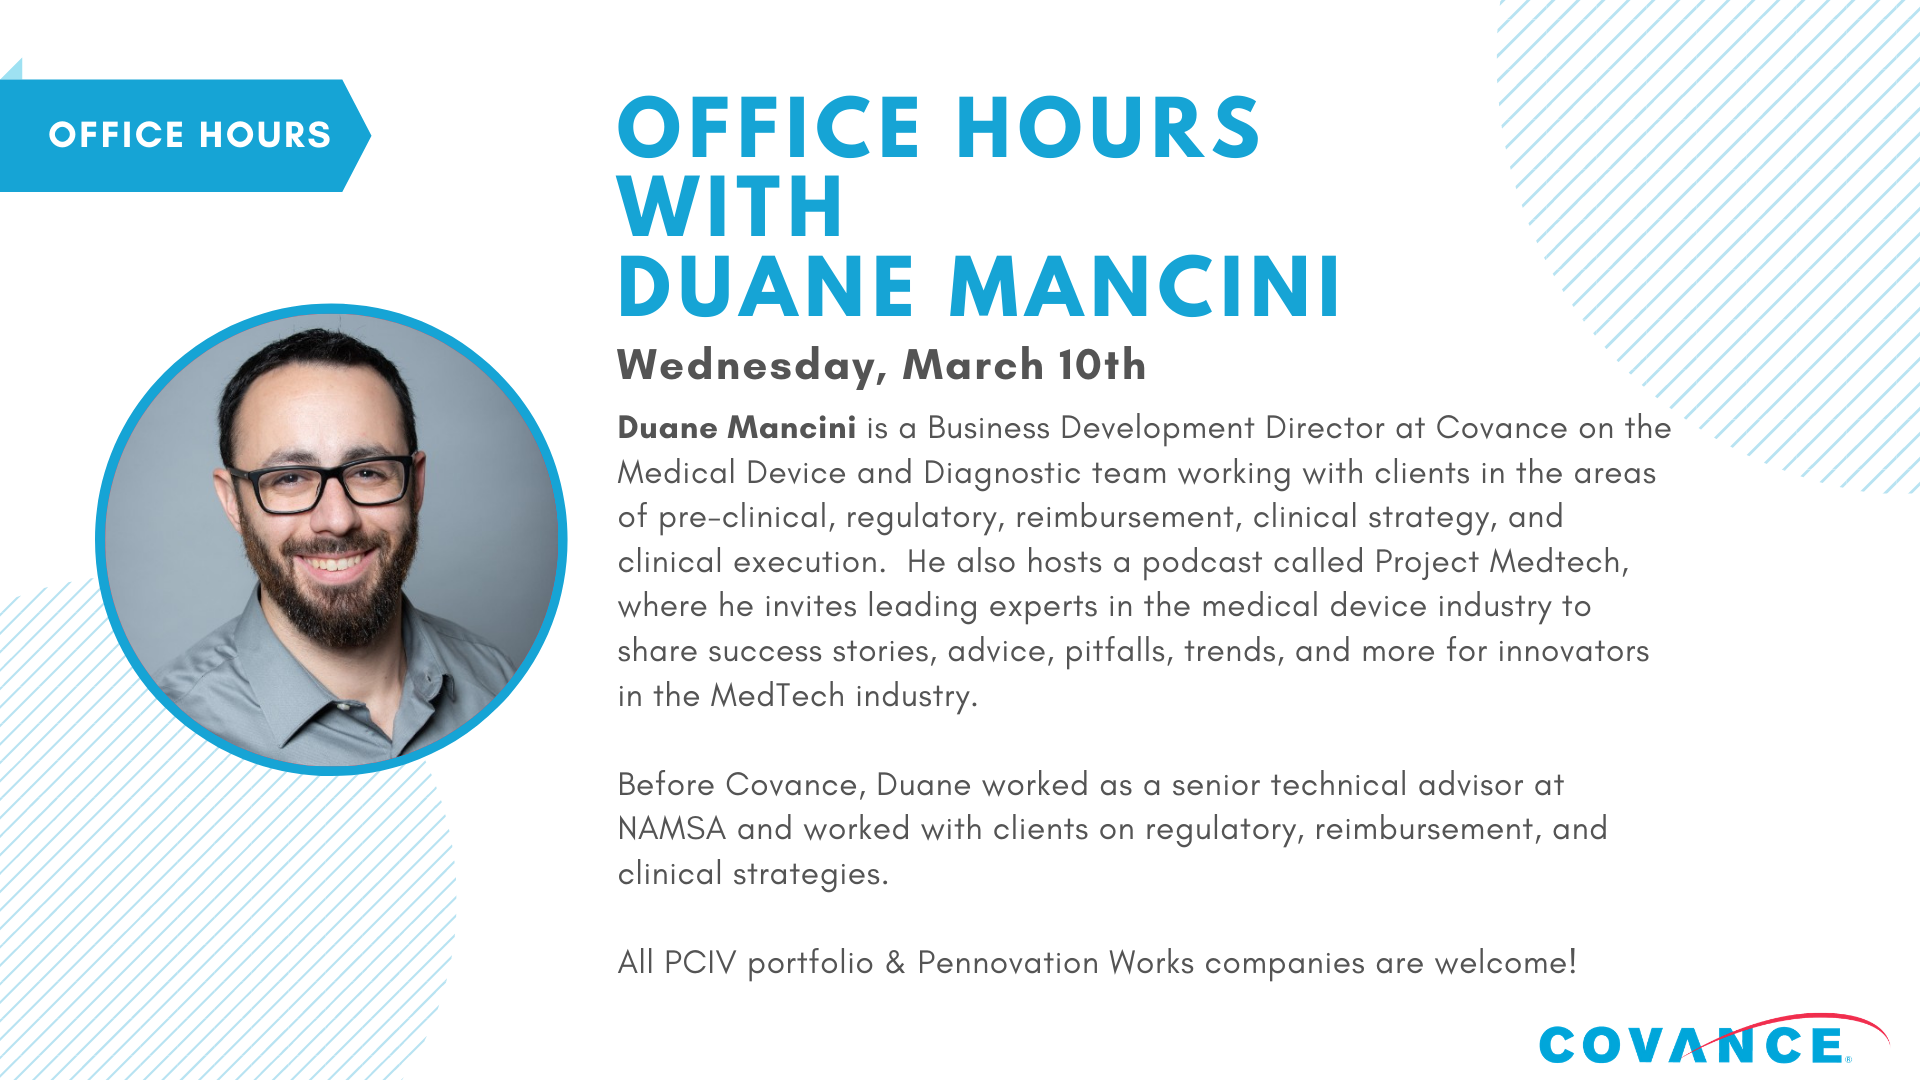 Office Hours with Duane Mancini